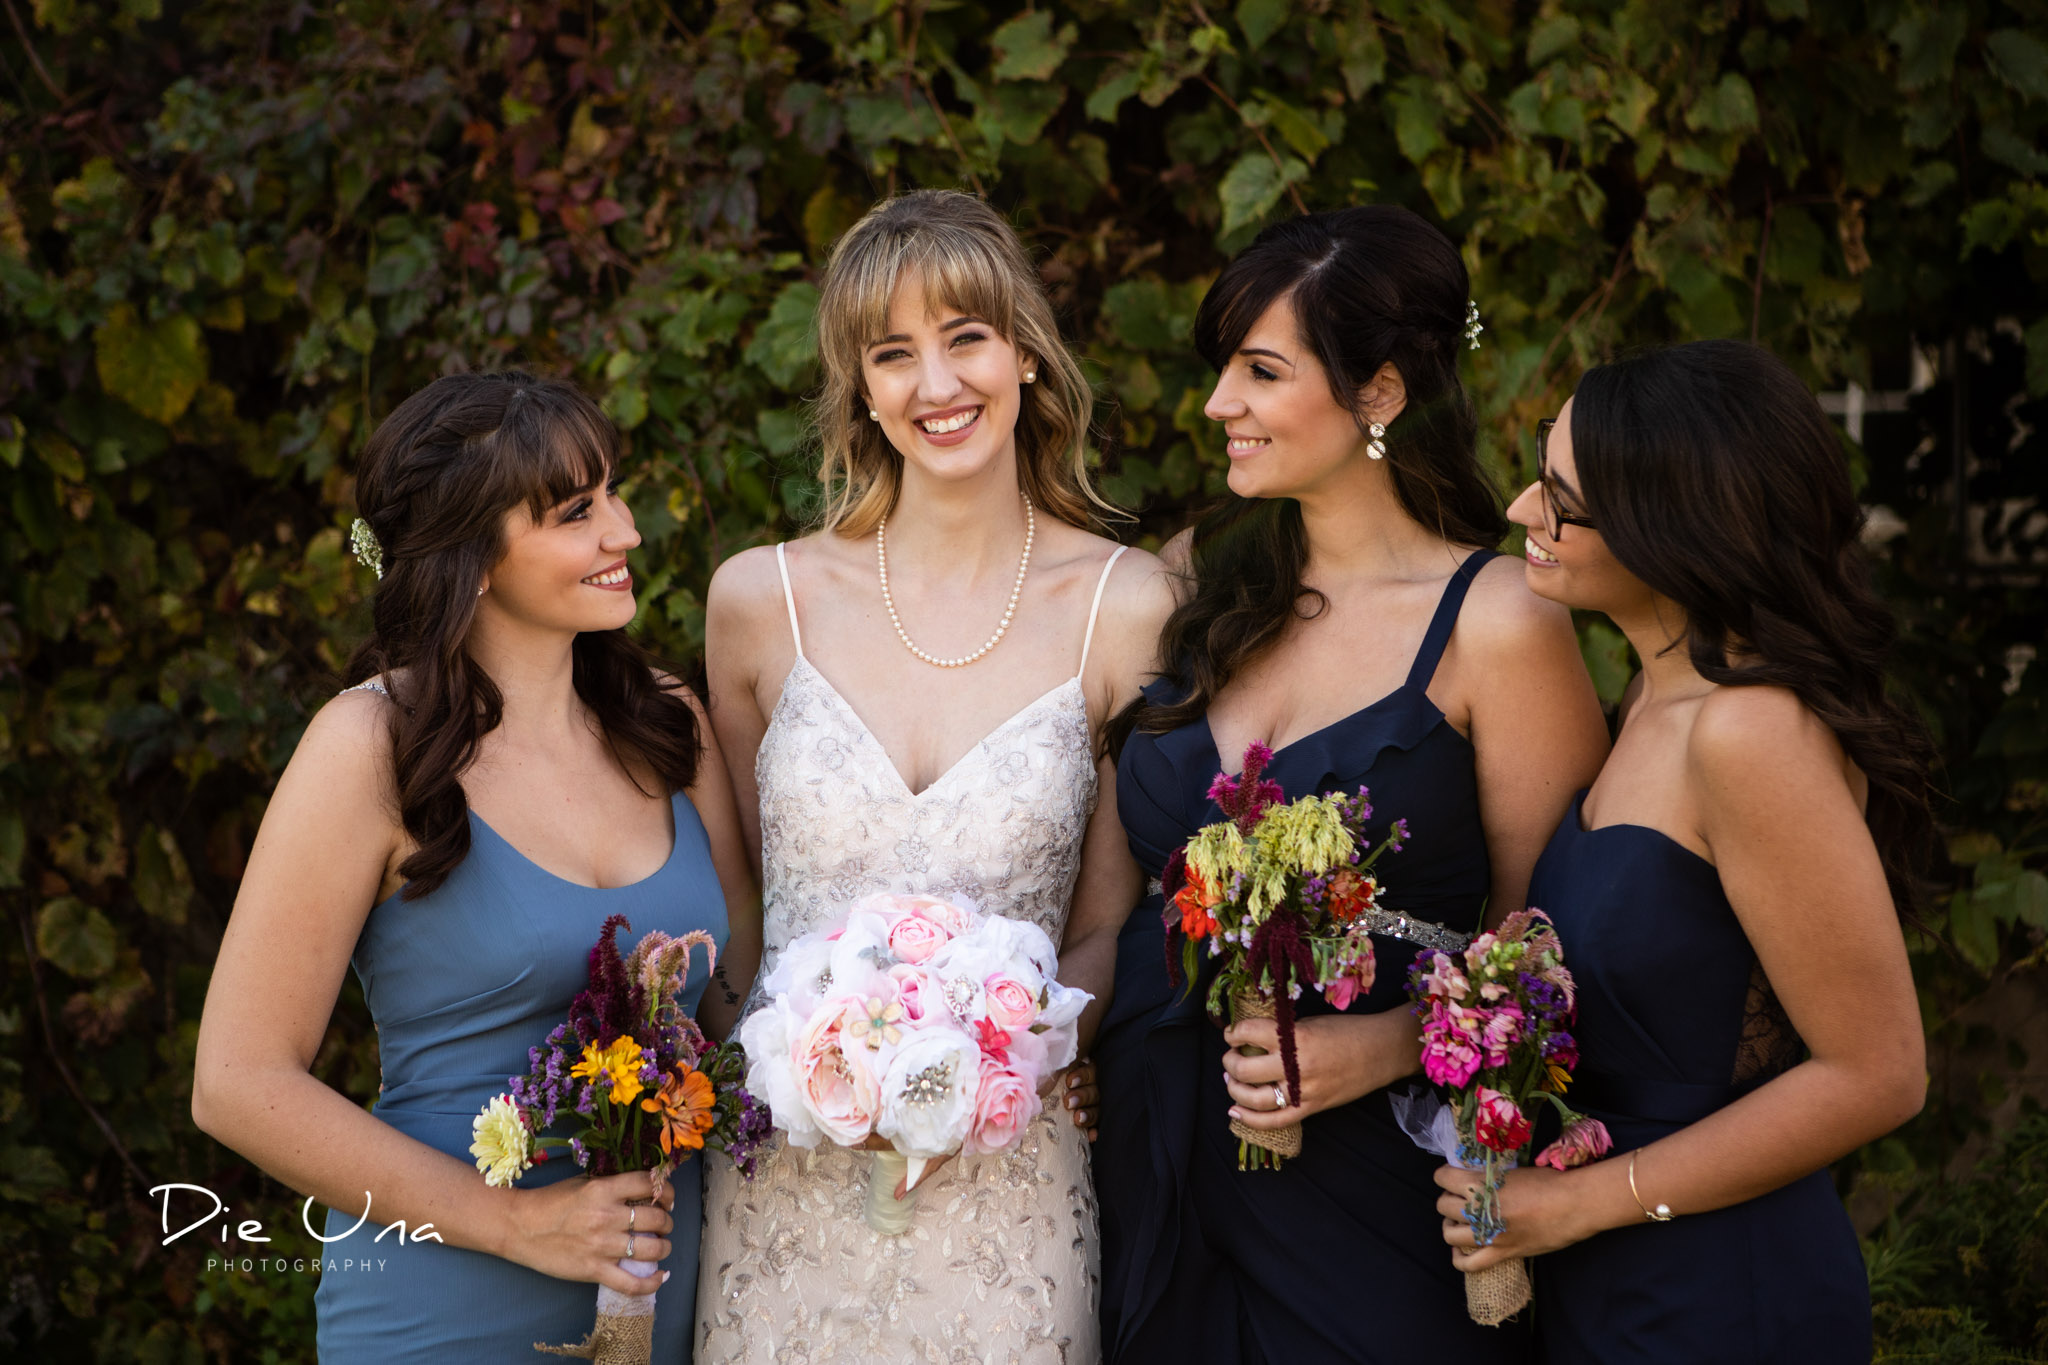 beautiful bride and her sisters wedding photography.jpg